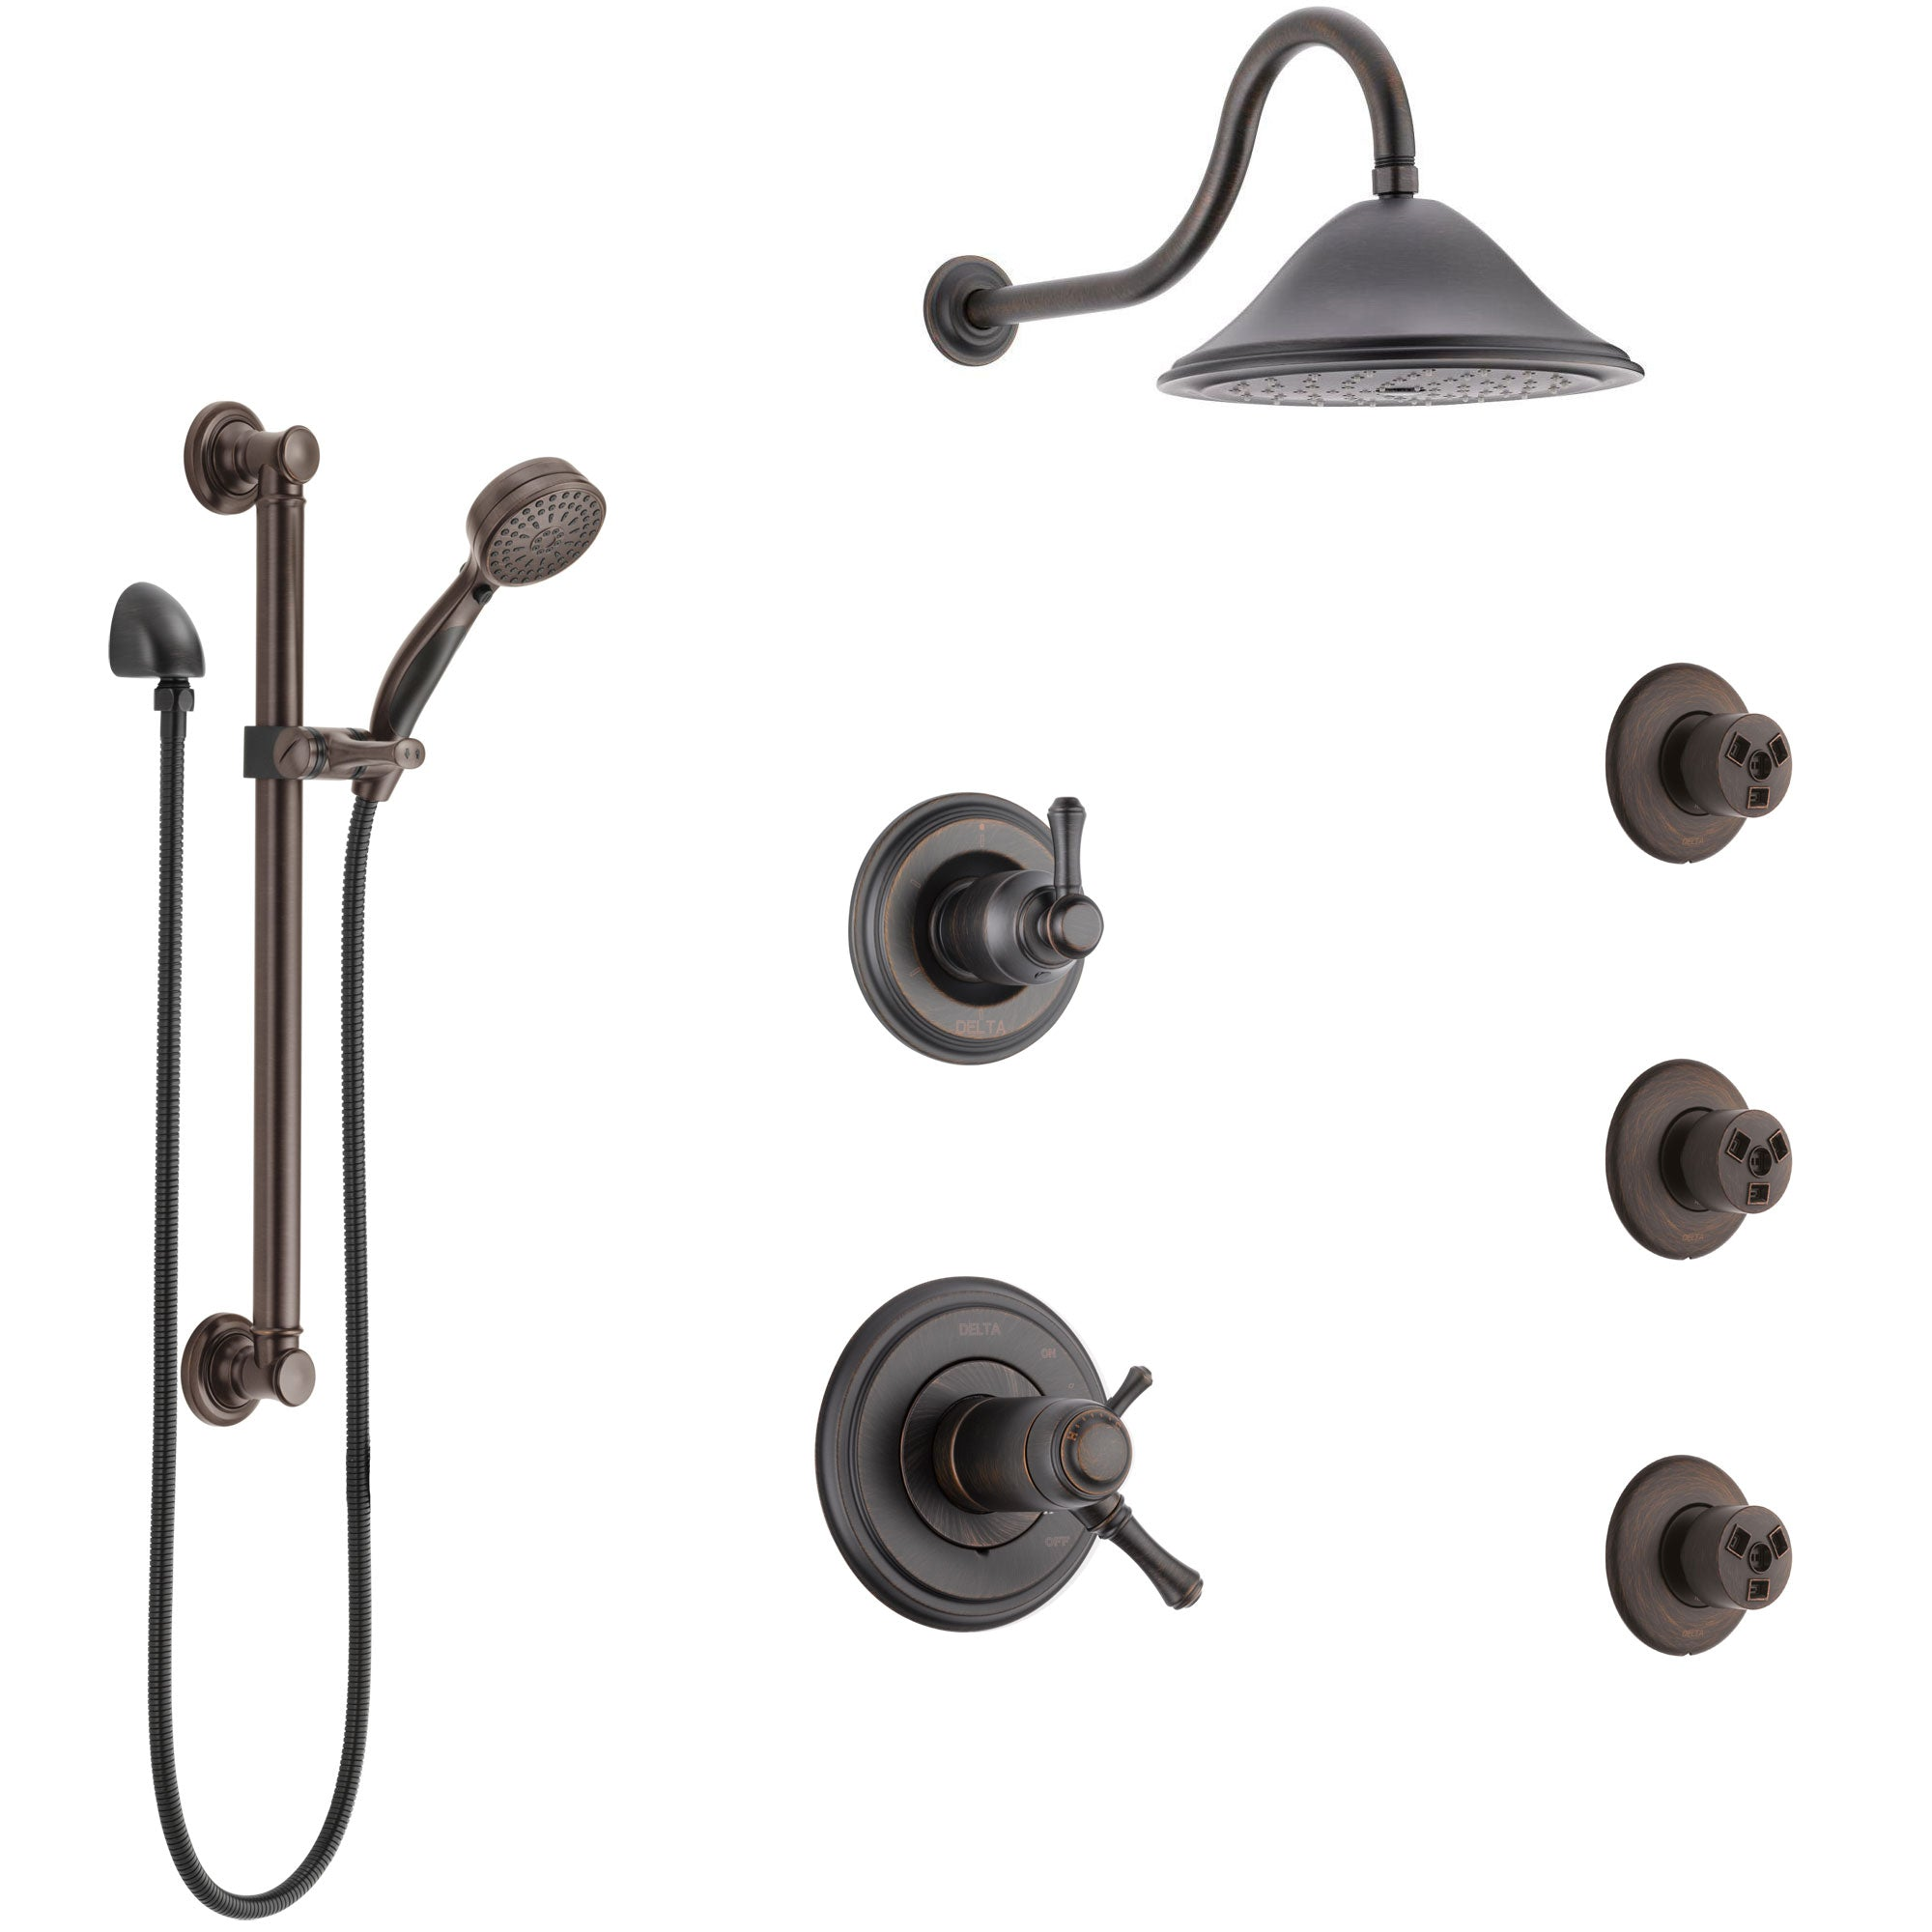 Delta Cassidy Venetian Bronze Shower System with Dual Thermostatic Control, Diverter, Showerhead, 3 Body Sprays, and Grab Bar Hand Shower SS17T971RB2